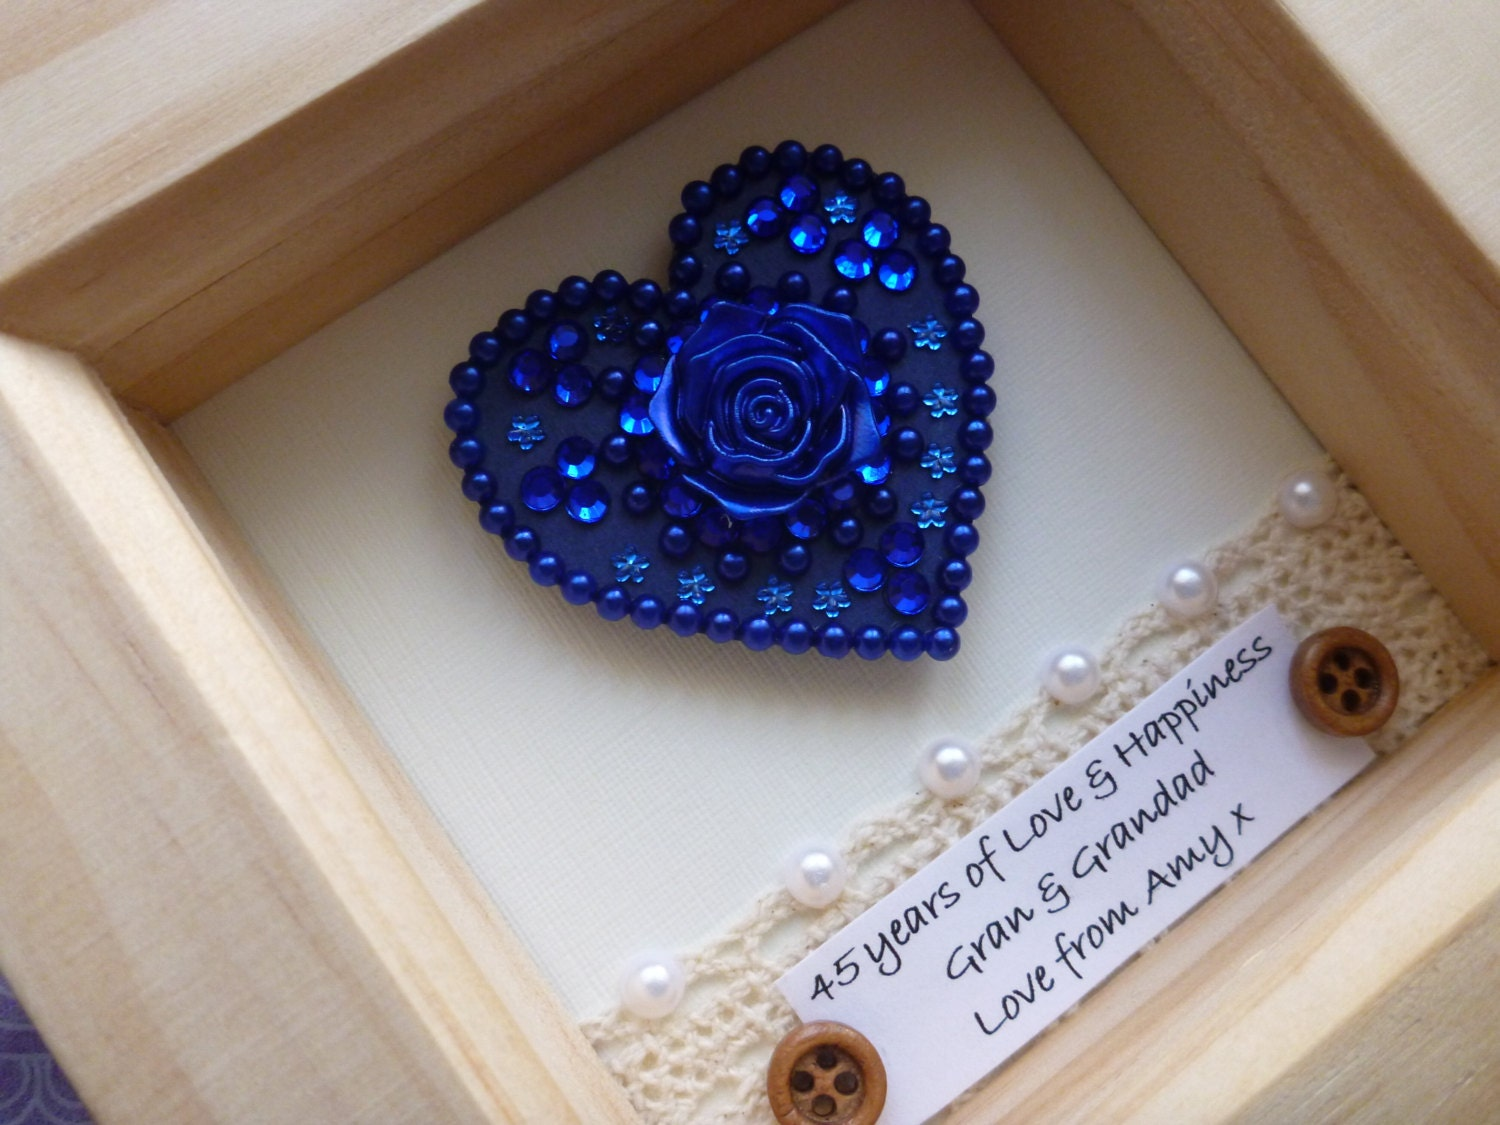 Gifts For 45th Wedding Anniversary: 45th Wedding Anniversary Gift 45th Anniversary Gift Sapphire